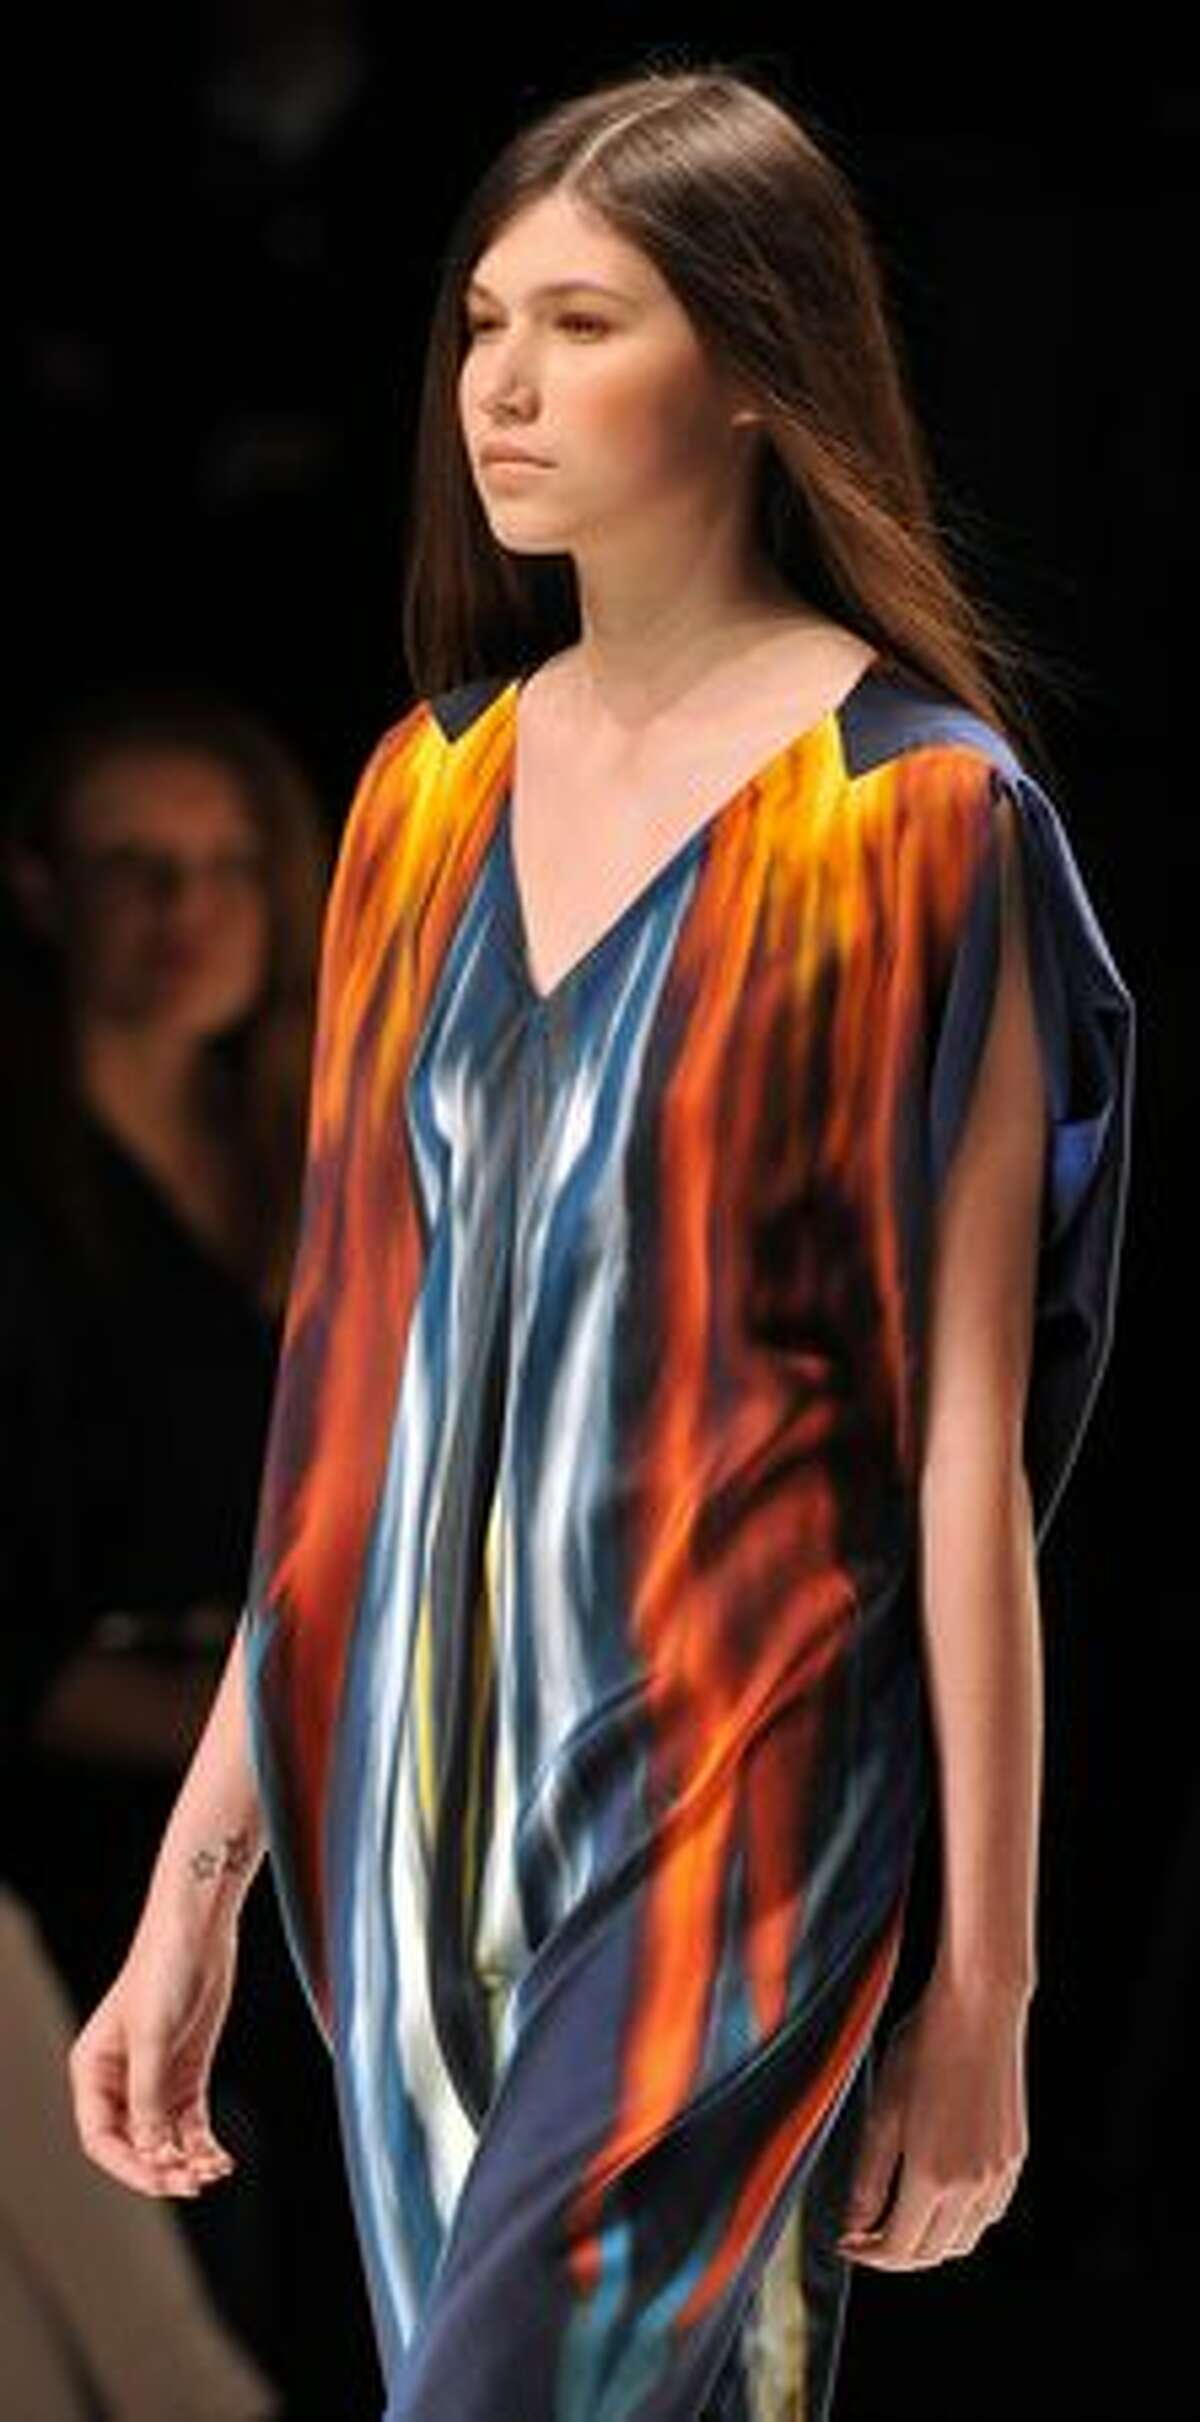 A model presents a creation by designer Maria Grachvogel during the Spring/Summer 2011 collections presentations on the first day of London Fashion Week, in London, on September 17, 2010.